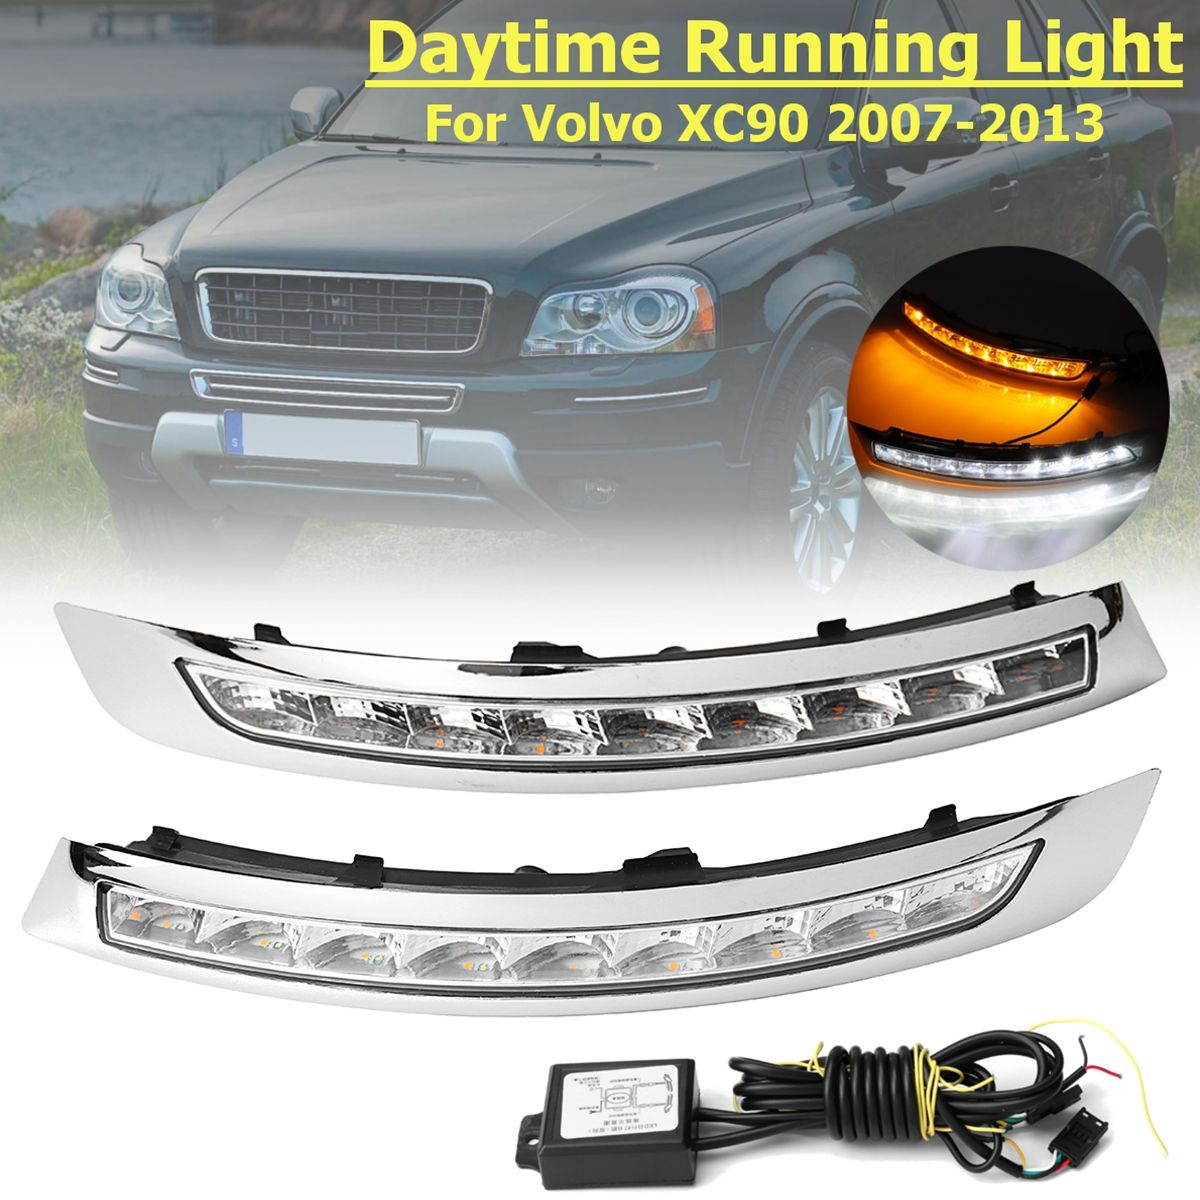 1 Pair Daytime Running Lights LED DRL Lamp Turning Signal fog lamp For Volvo XC90 2007 2008 2009 2010 2011 2012 2013